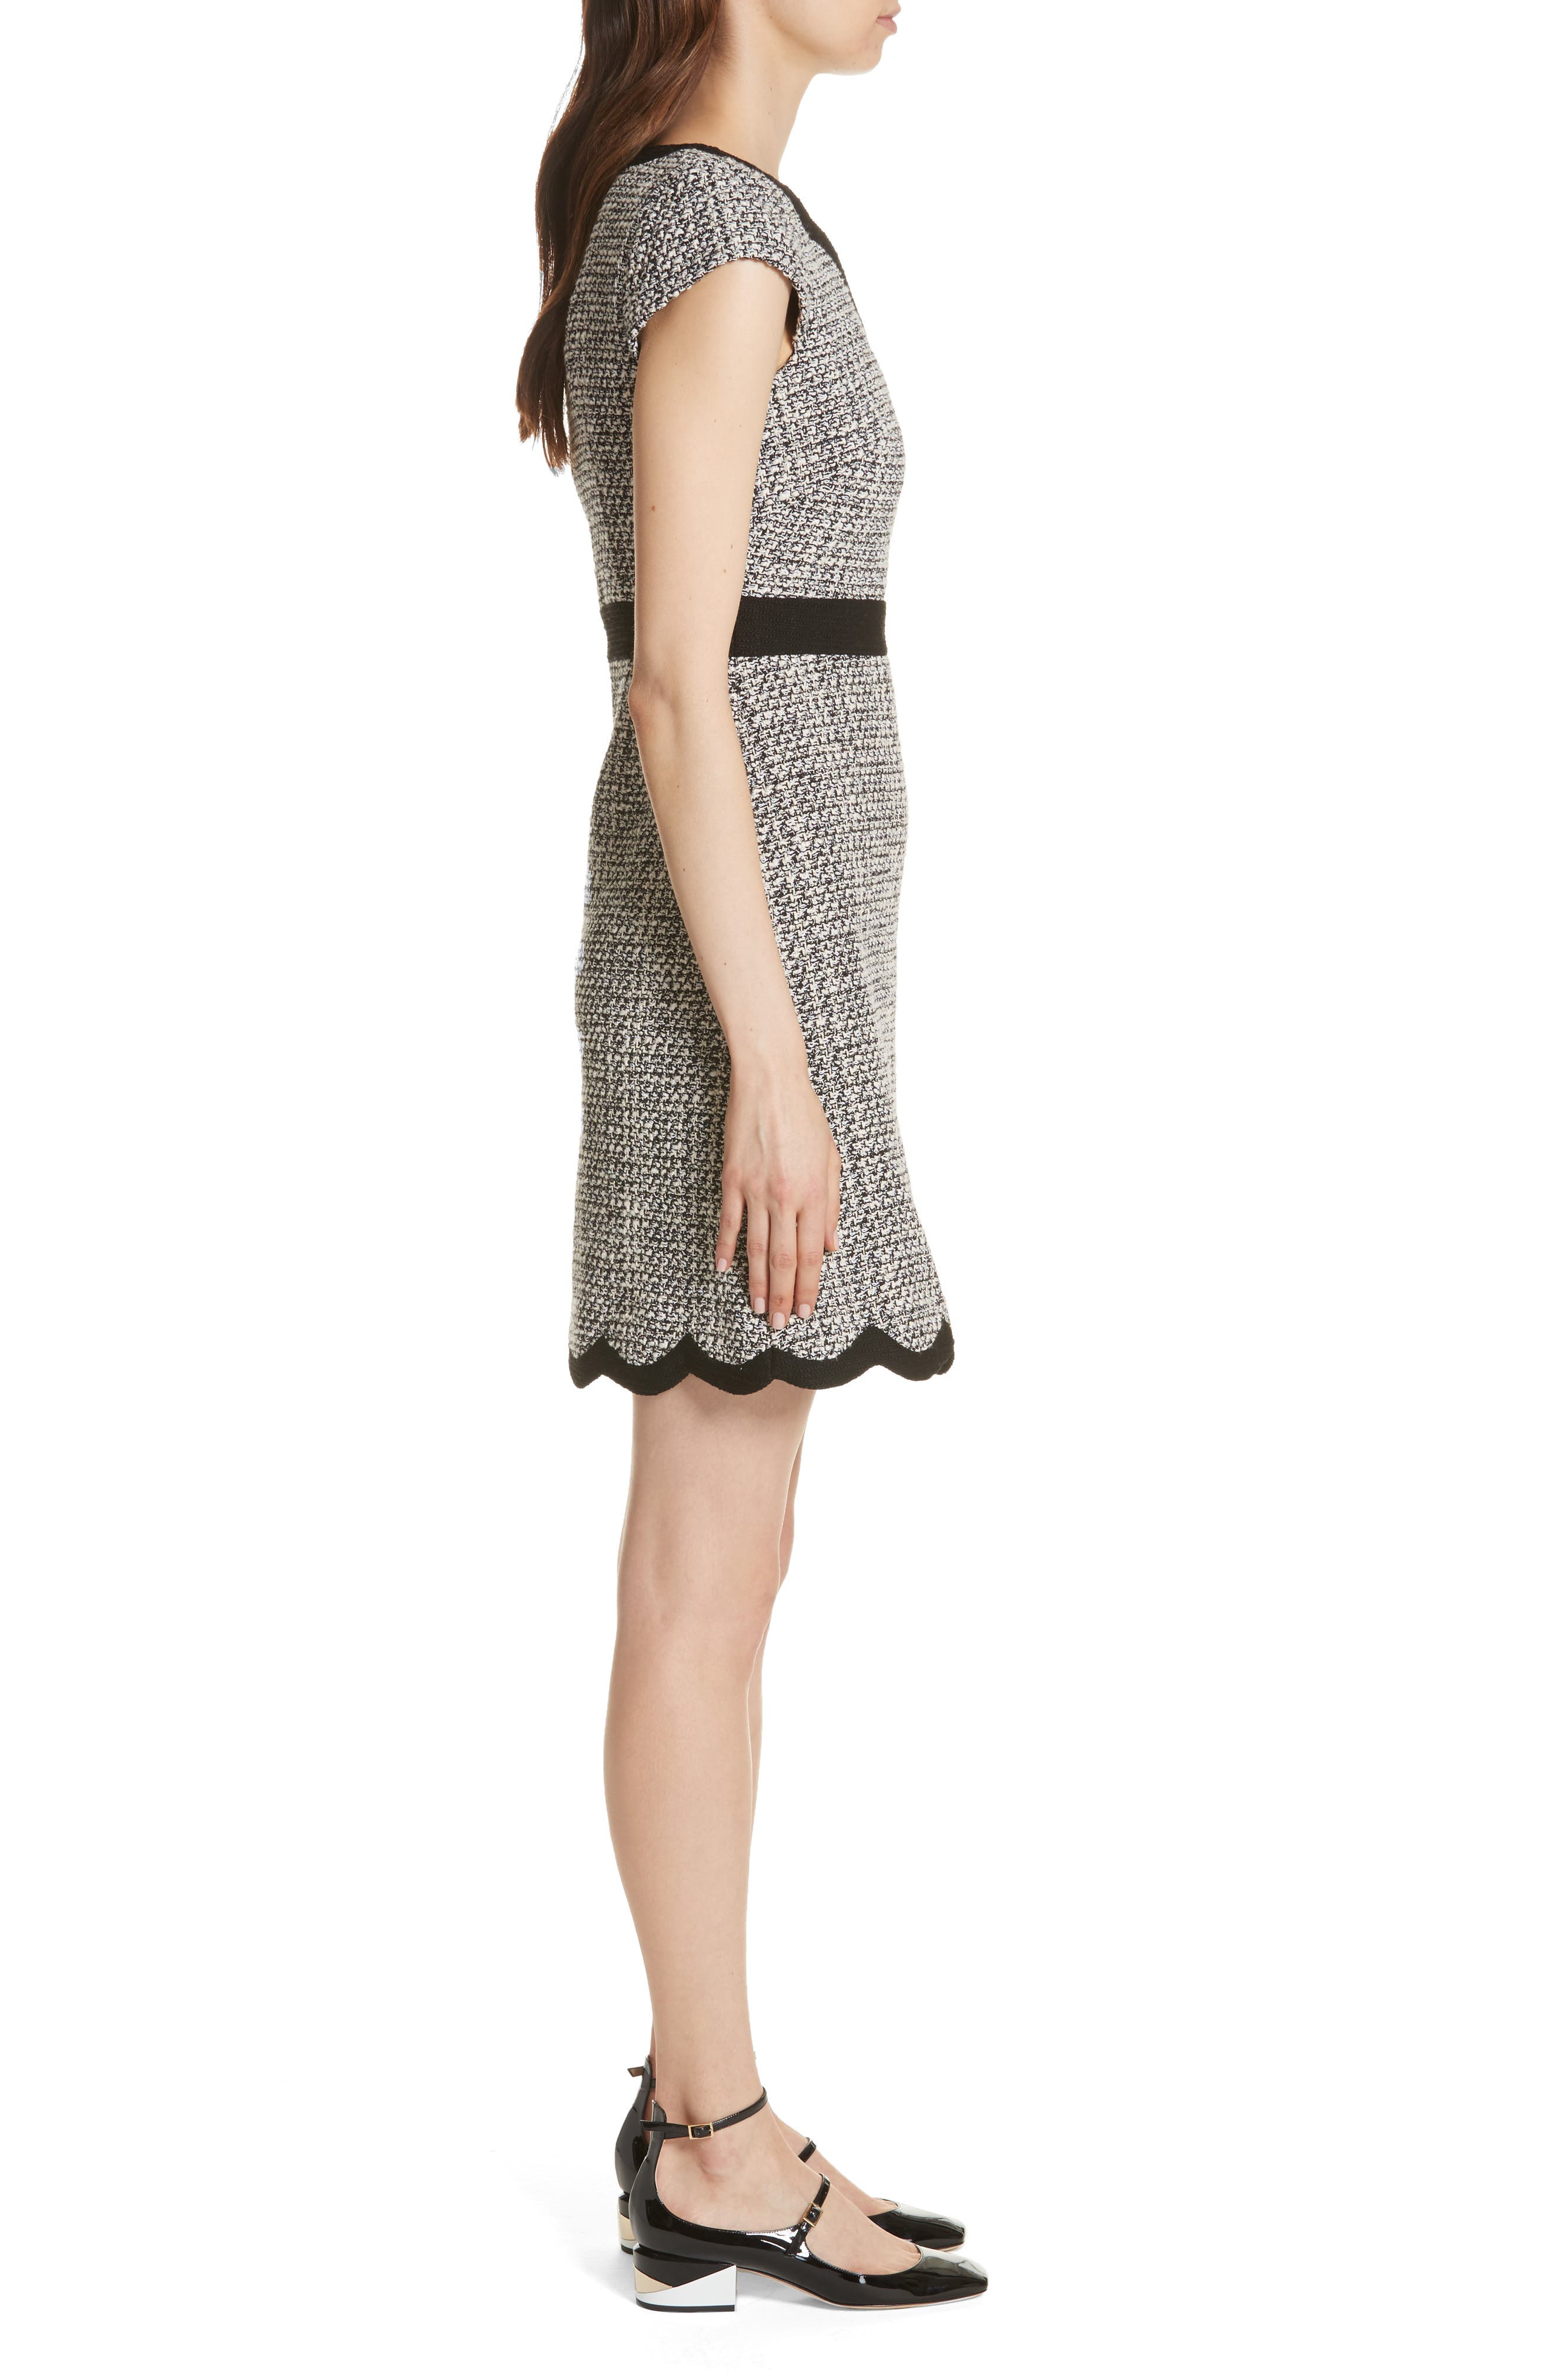 scallop tweed dress,                             Alternate thumbnail 3, color,                             Black/ Cream